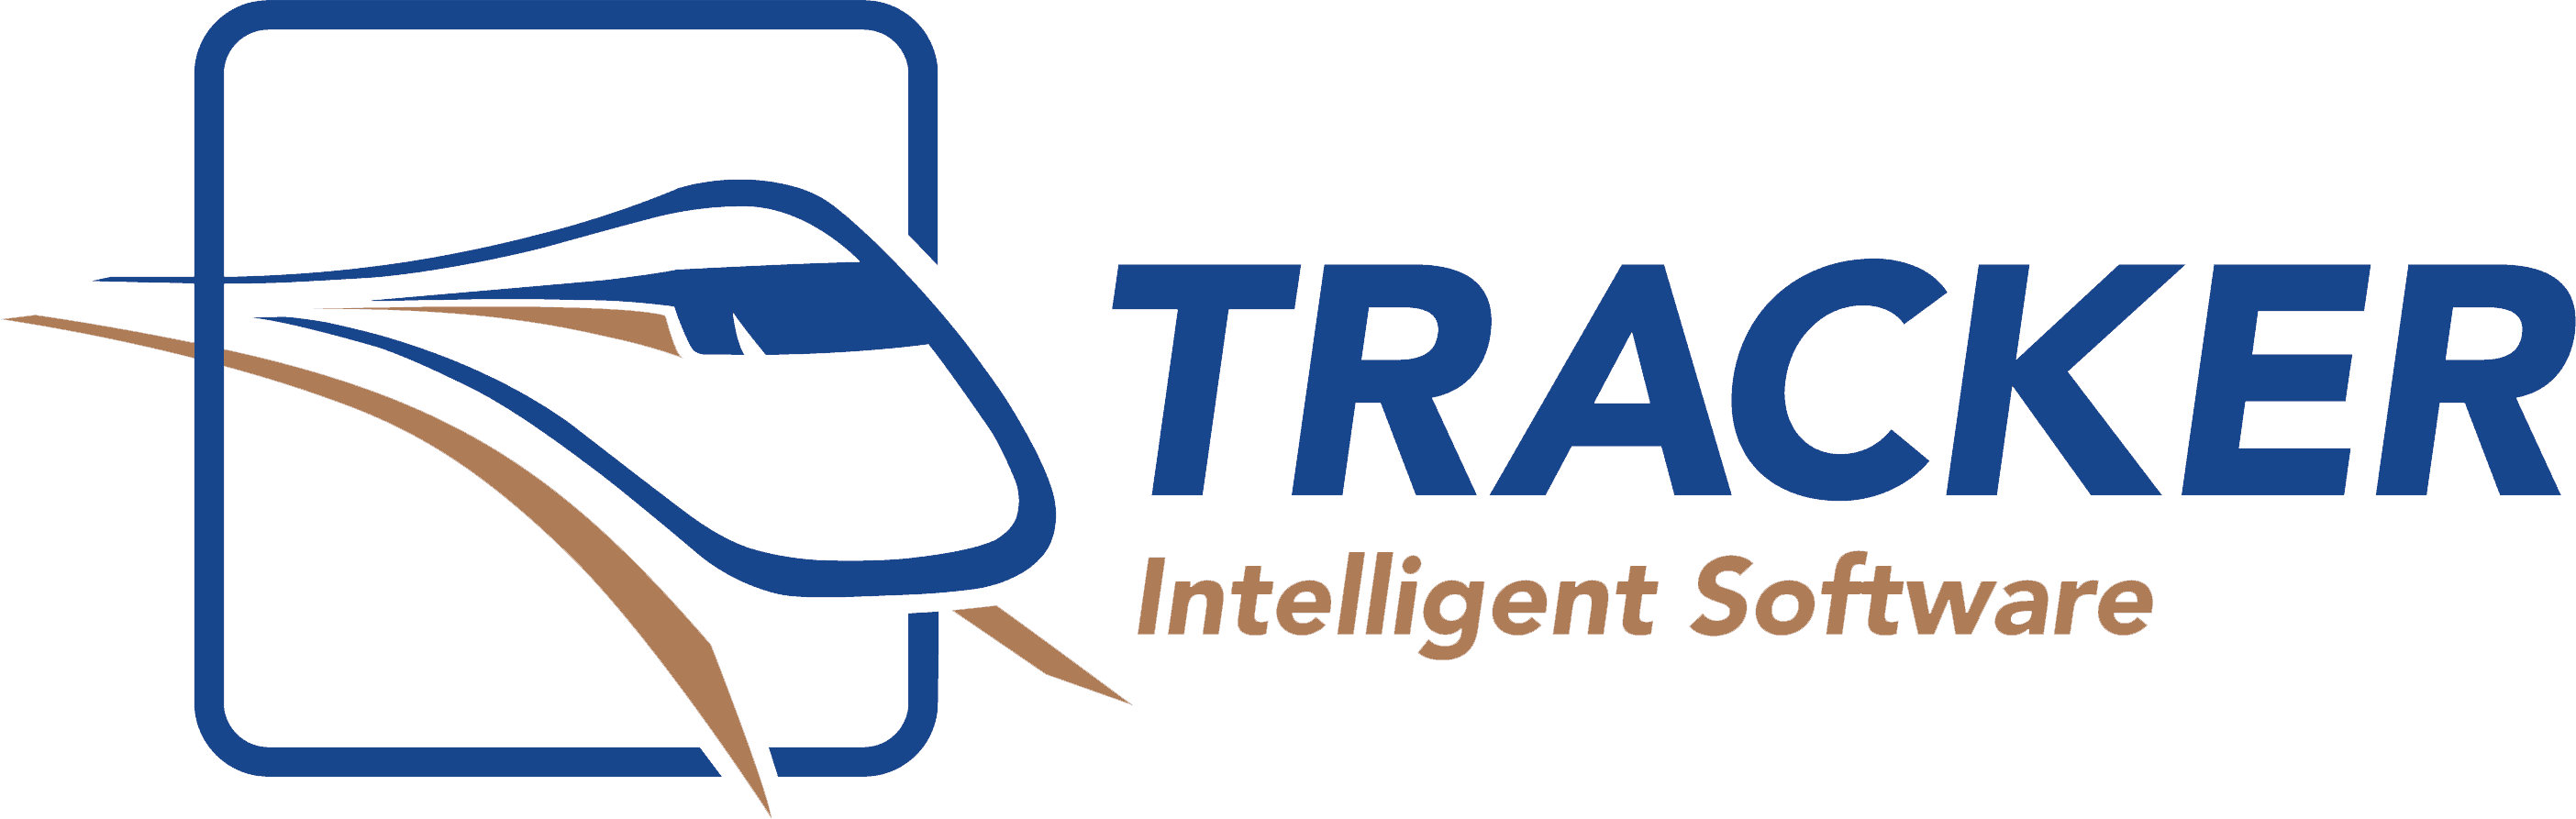 Tracker Intelligence Software Logo